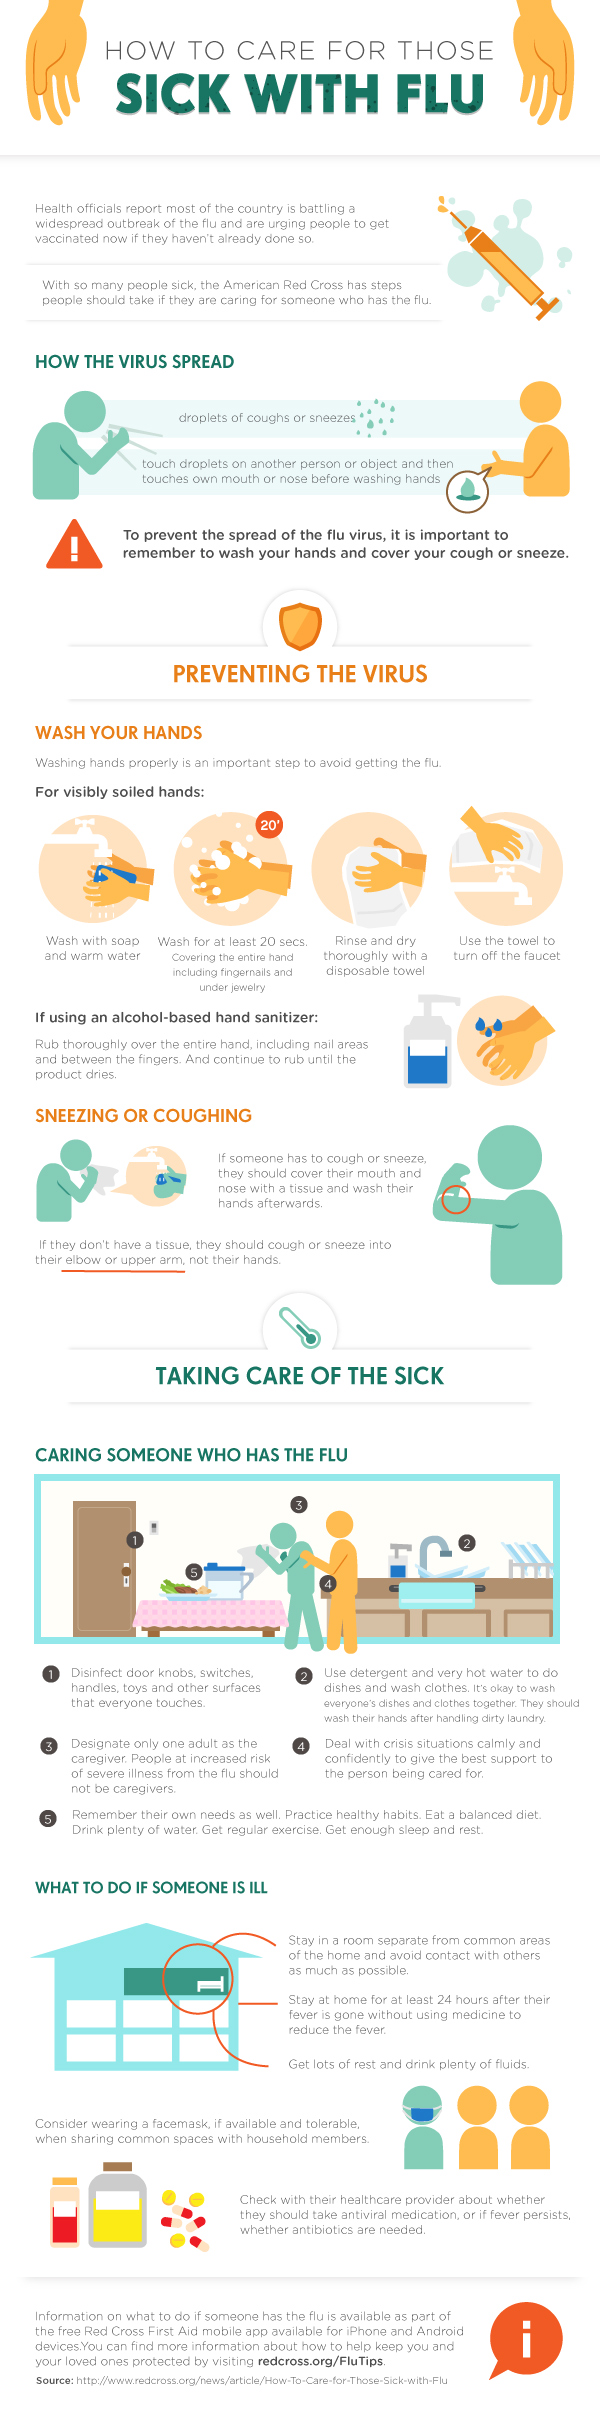 How to Care for those Sick with Flu